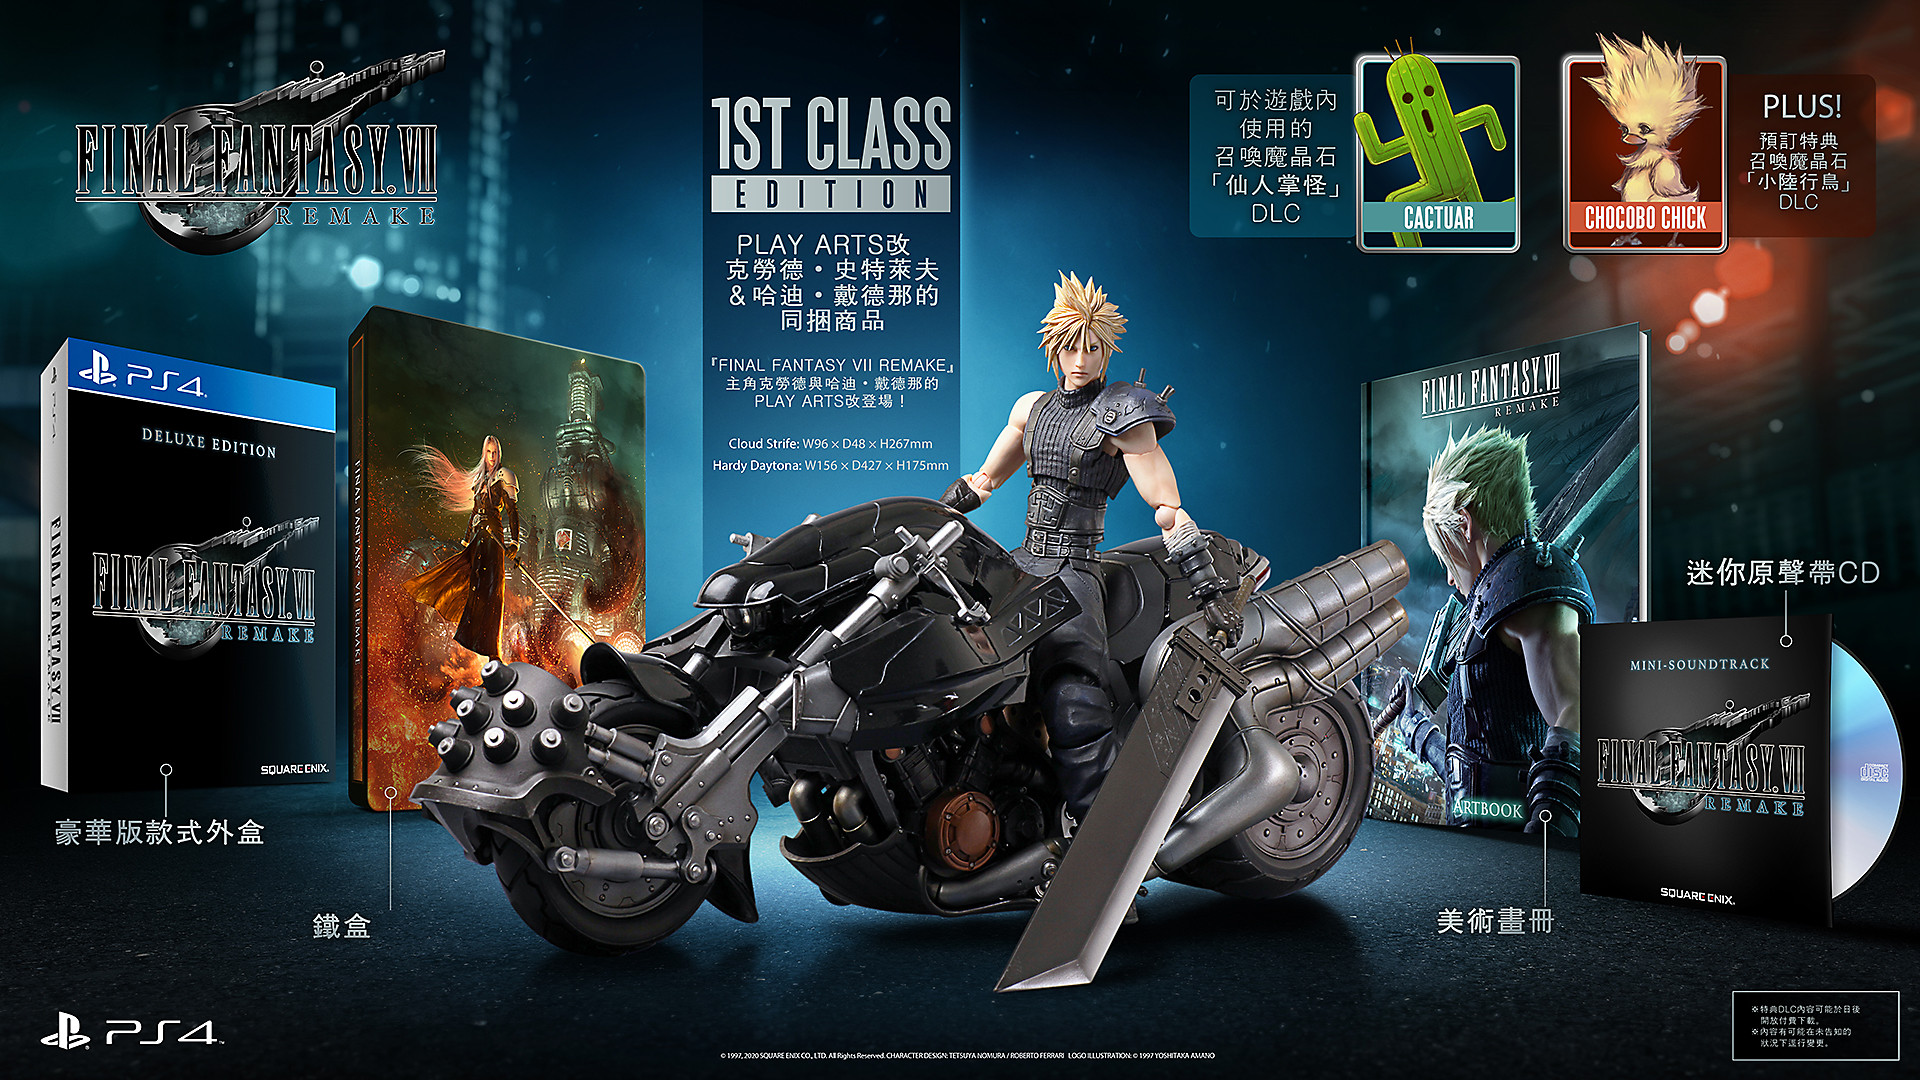 《FINAL FANTASY VII REMAKE》- 1ST CLASS EDITION寫真照